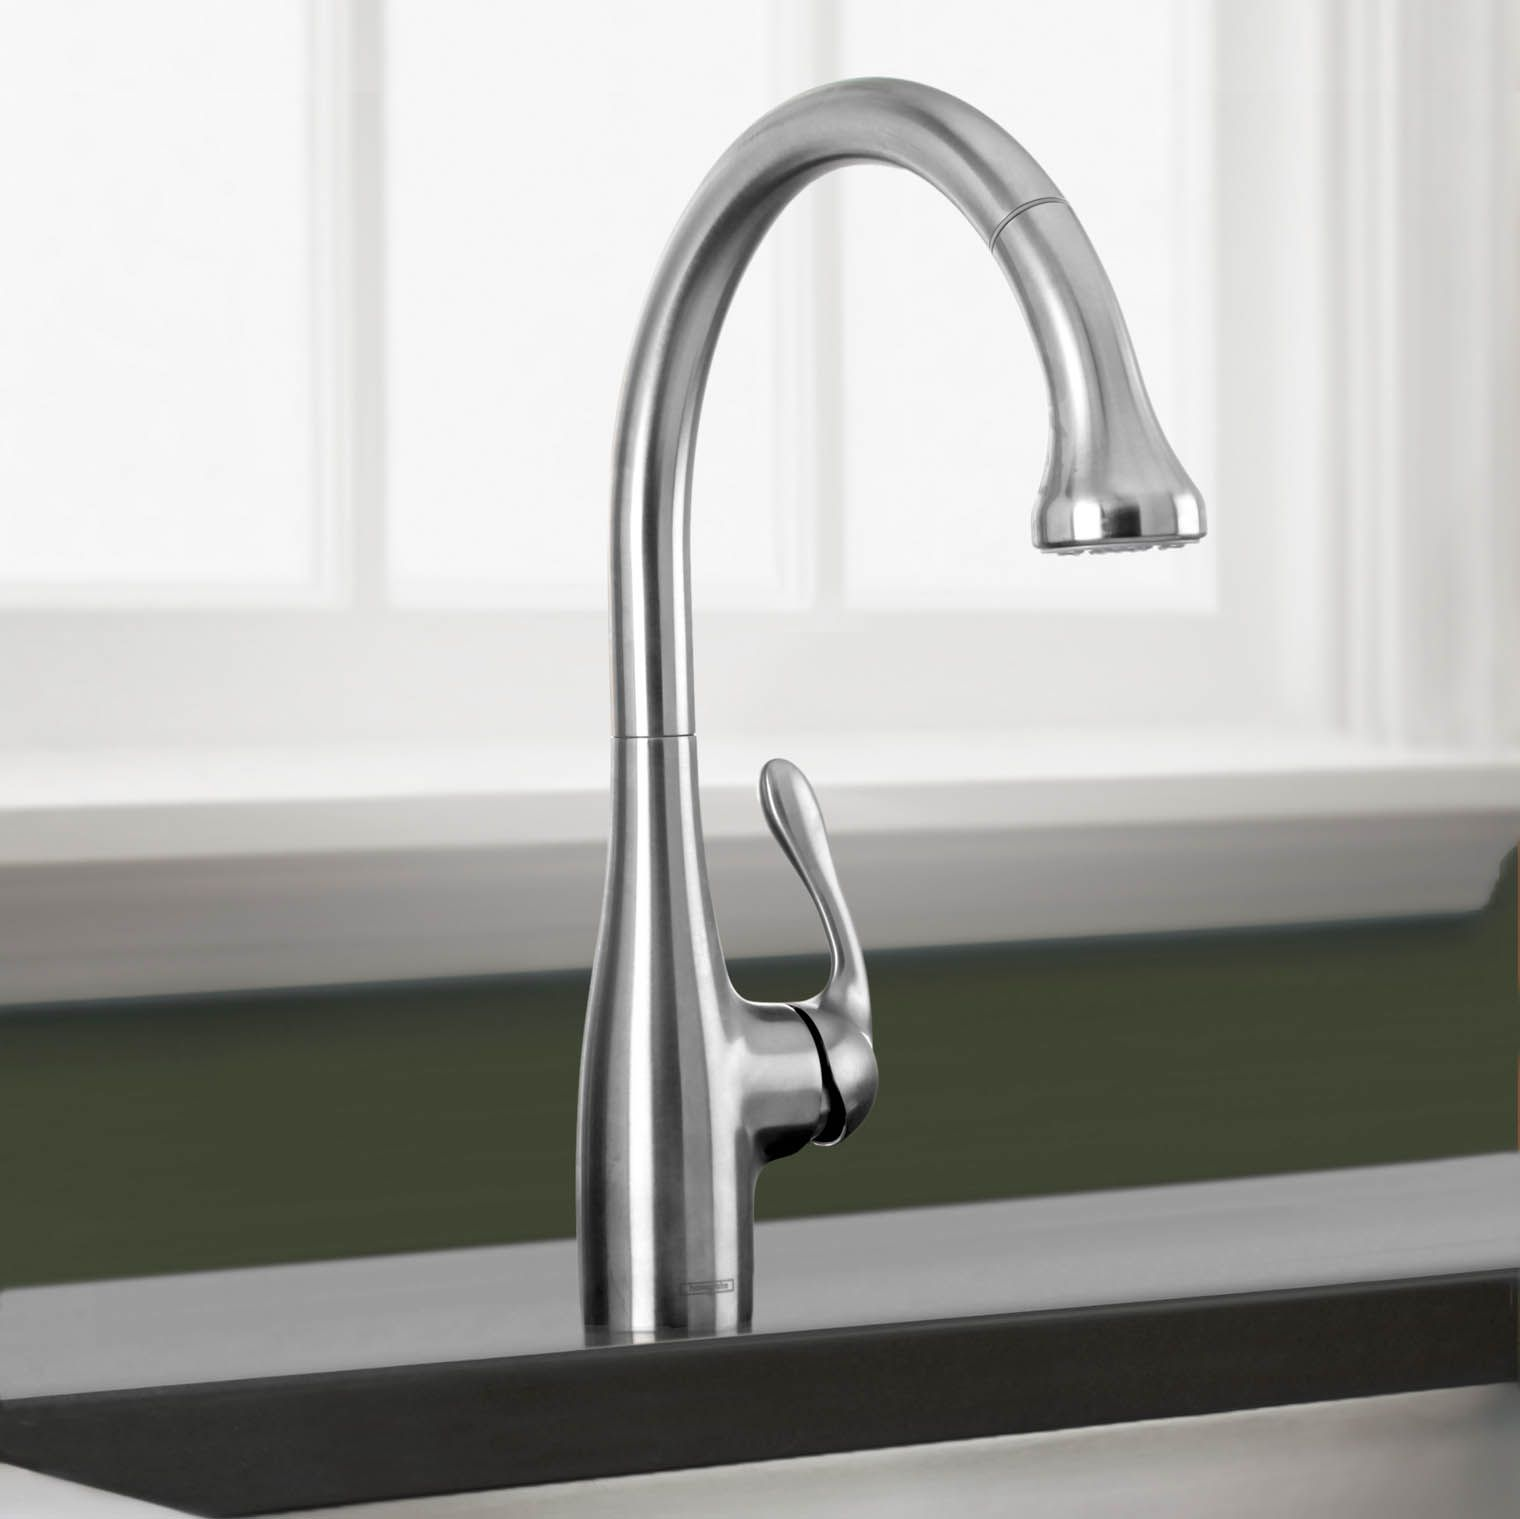 Allegro E Single Handle Pull Down Kitchen Faucet | Faucet, Kitchen ...